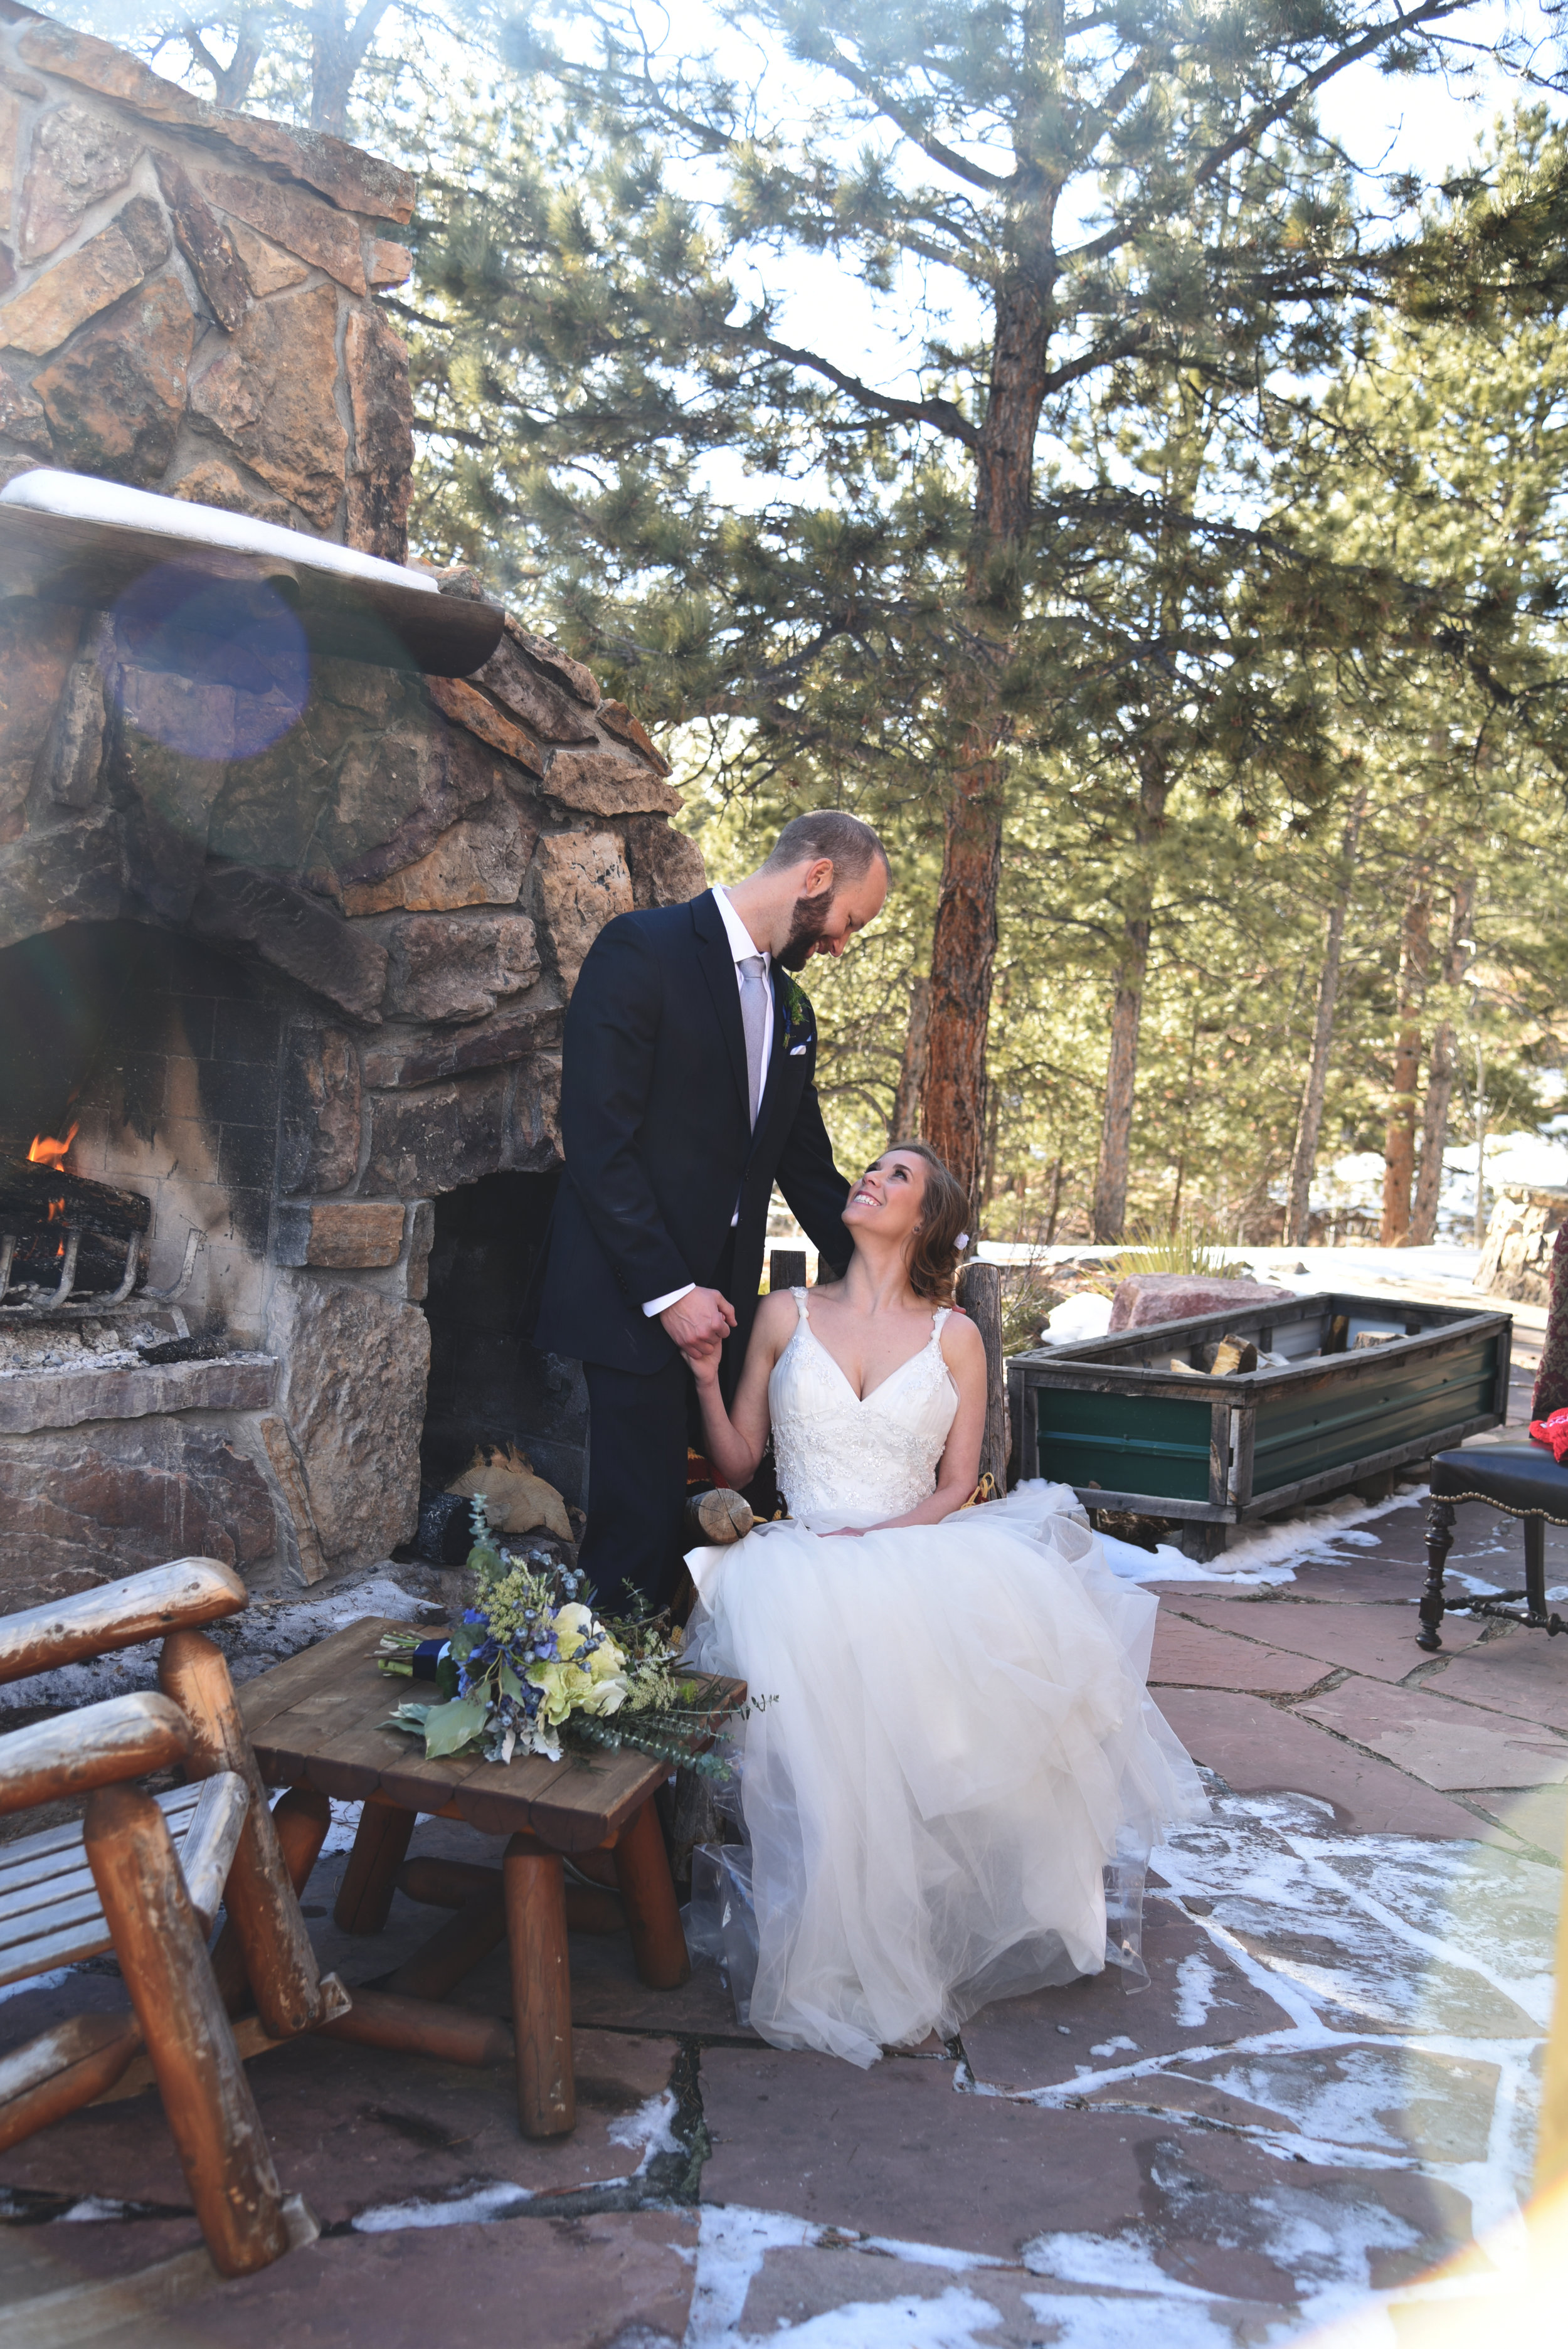 Colorado mountain wedding, colorado wedding photographer, denver wedding photographer, rocky mountain wedding photographer,